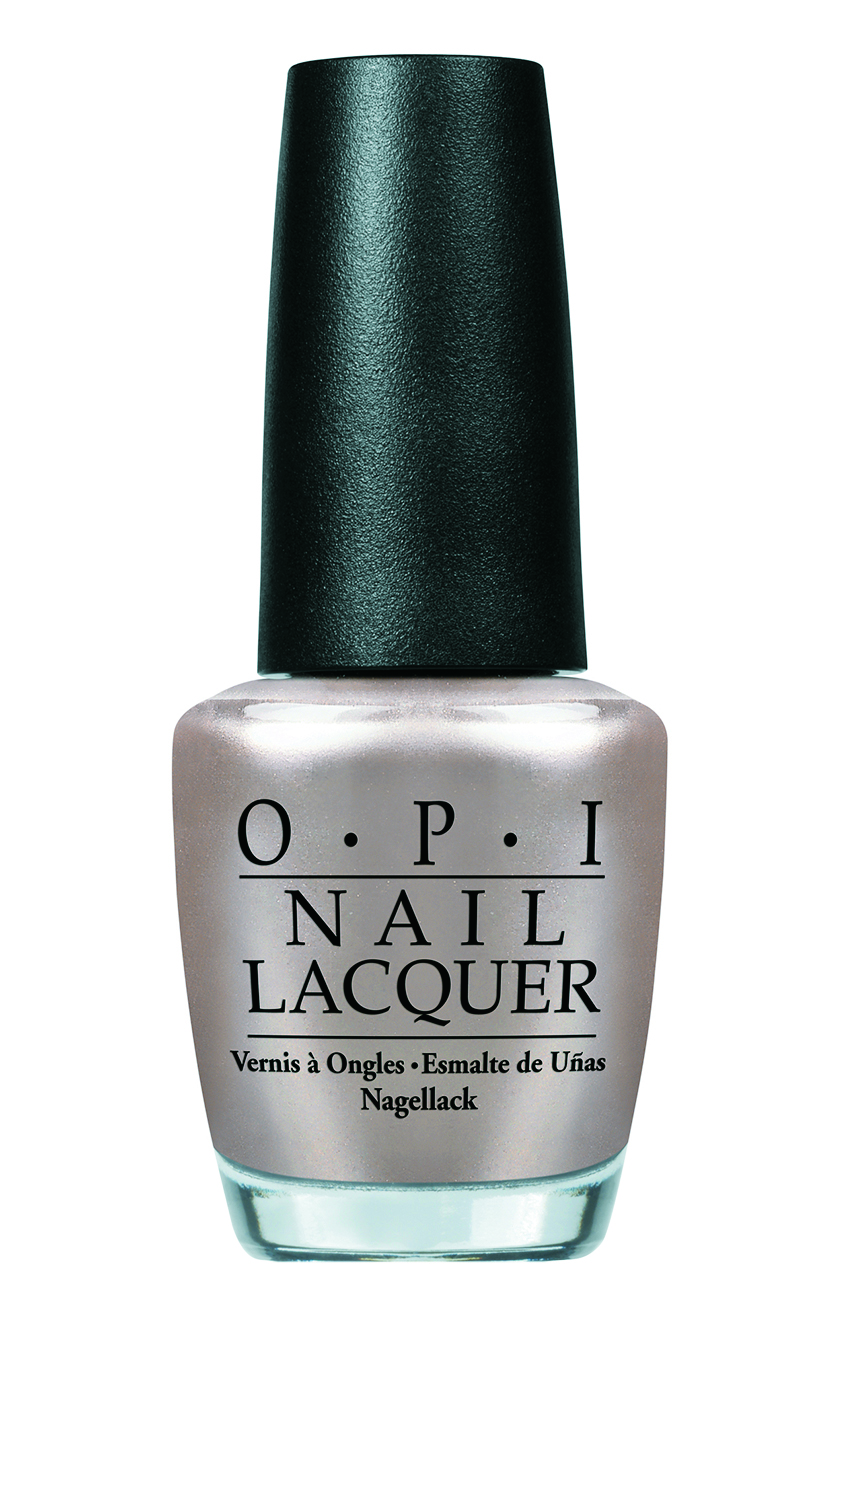 OPI Take a Right on Bourbon: From metallic stripes to liquid chromes to silver stars—the futuristic hue was seen at the designer shows of Chanel, 3.1 Phillip Lim and Noon by Noor.